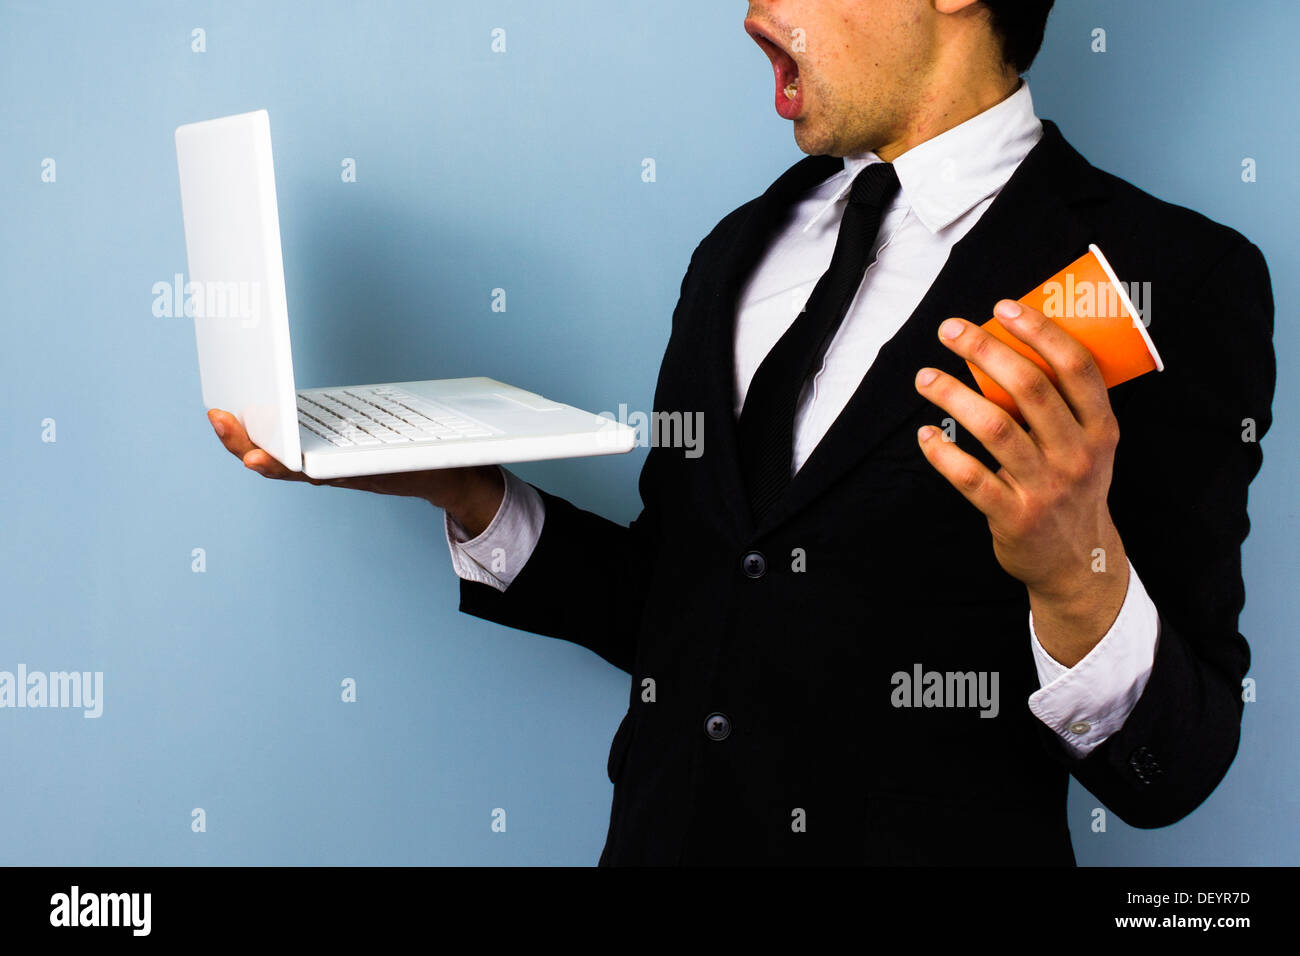 Young businessman is shocked about the news on his laptop and nearly spills his coffee - Stock Image